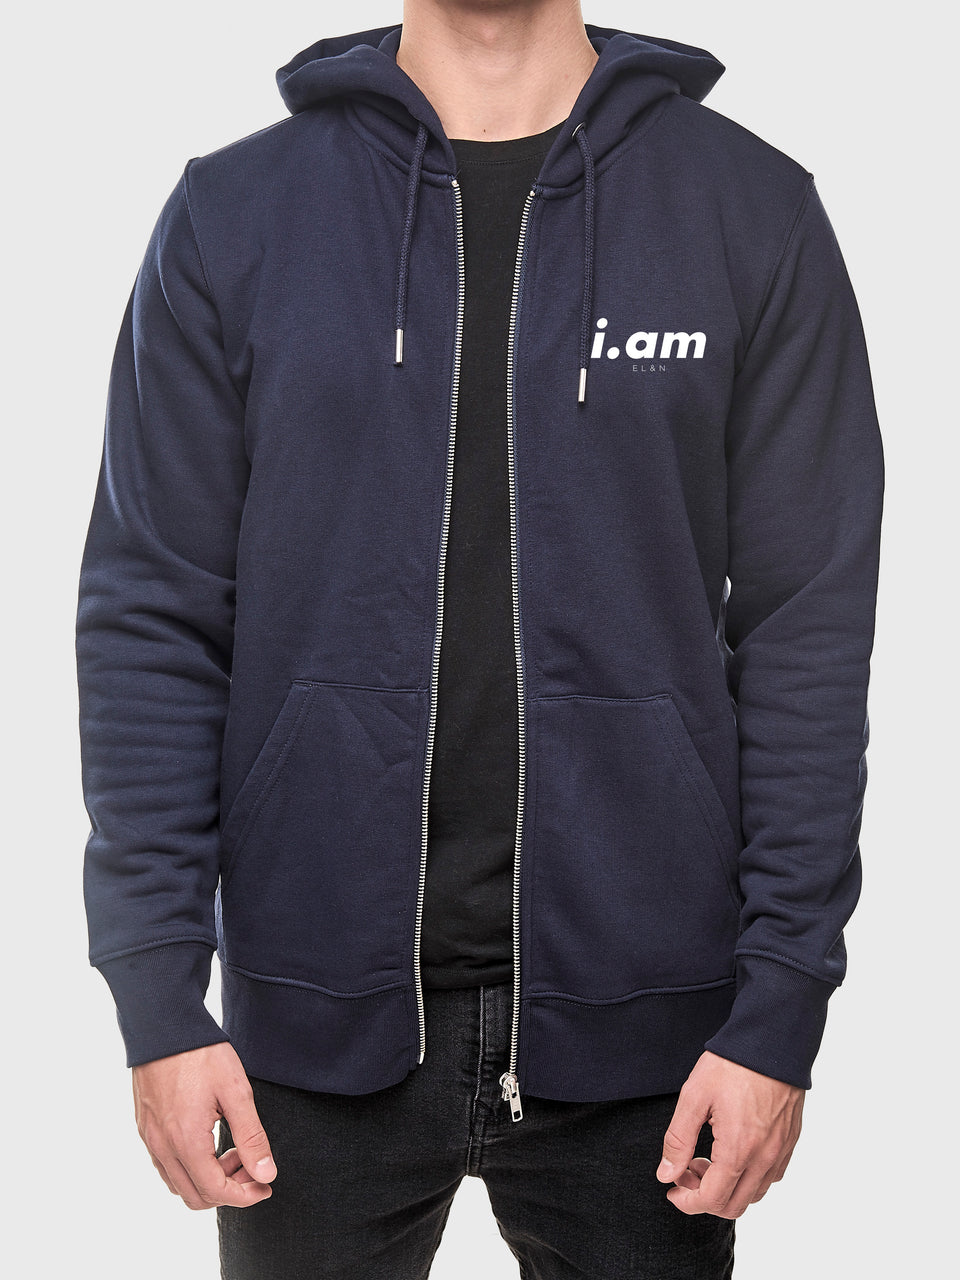 I am who I am - Navy - Unisex zip up hoodie